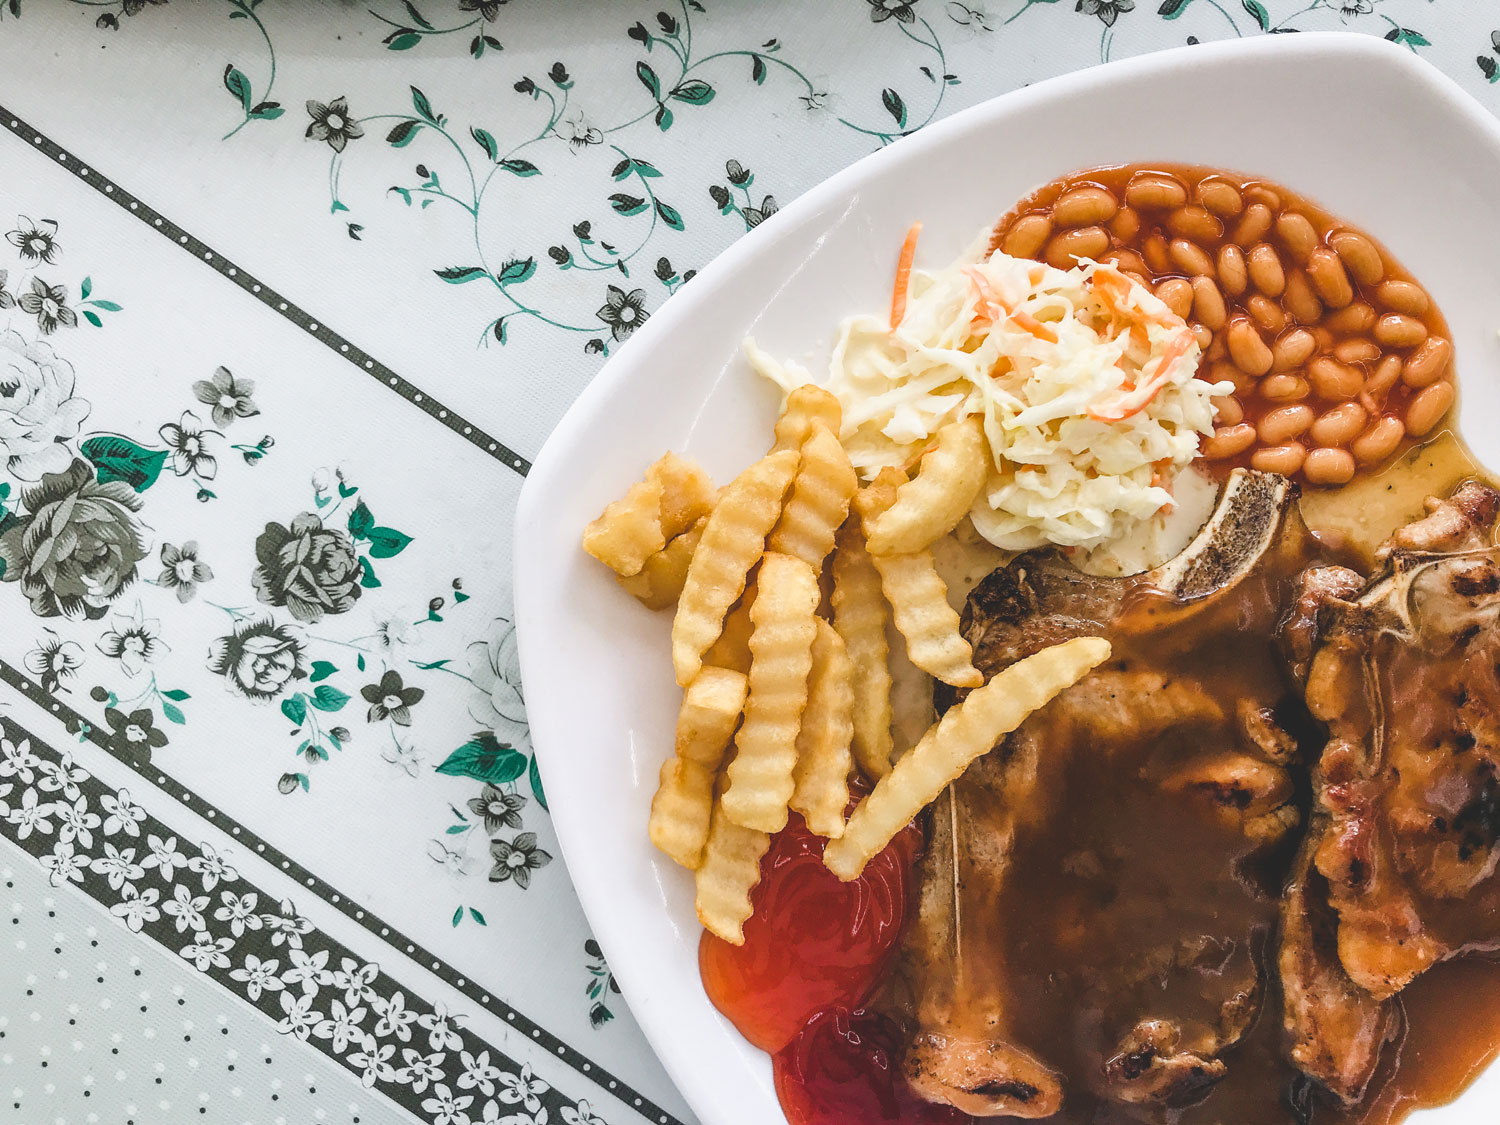 A plated porkchop in brown sauce served with crinkle-cut fries, baked beans and coleslaw.